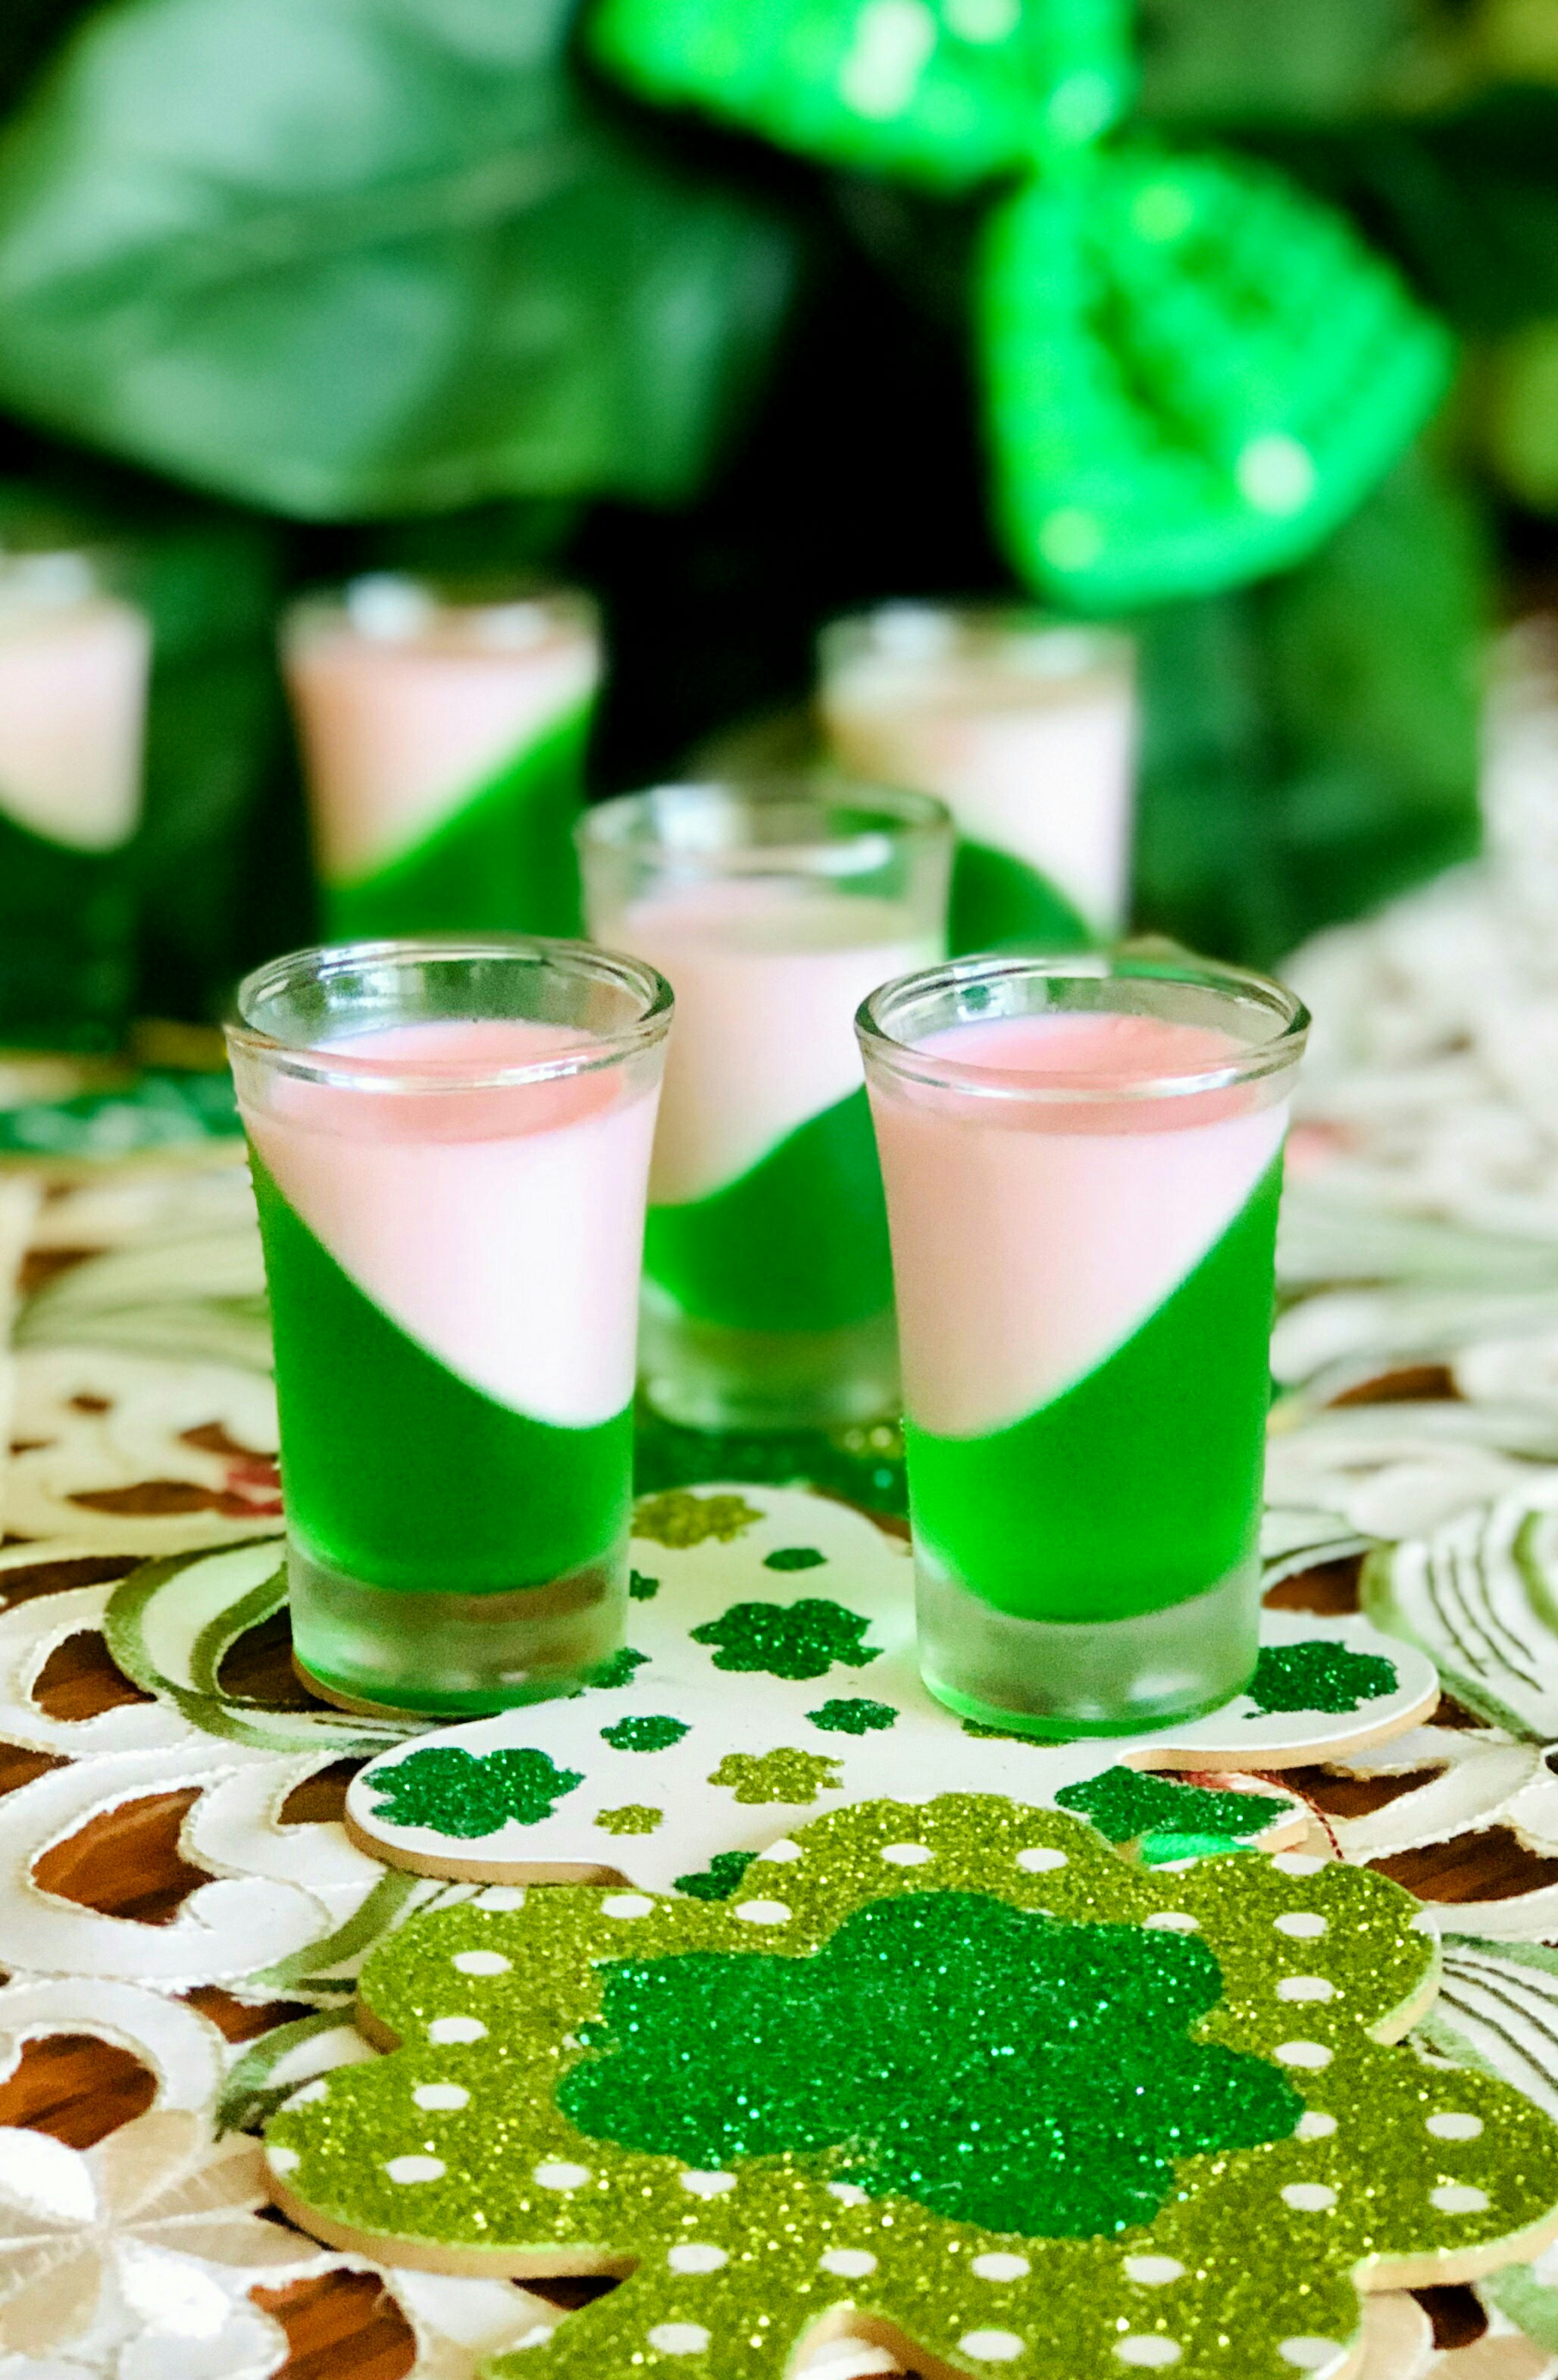 """A fun and tasty way of keeping your Jell-O shots Irish,"" says Yoly. ""Just add Irish whiskey and Baileys Strawberries & Cream liqueur to your layered shot glasses.""                                   Add a shot of Irish Wisdom: Forgetting a debt doesn't mean it's paid."